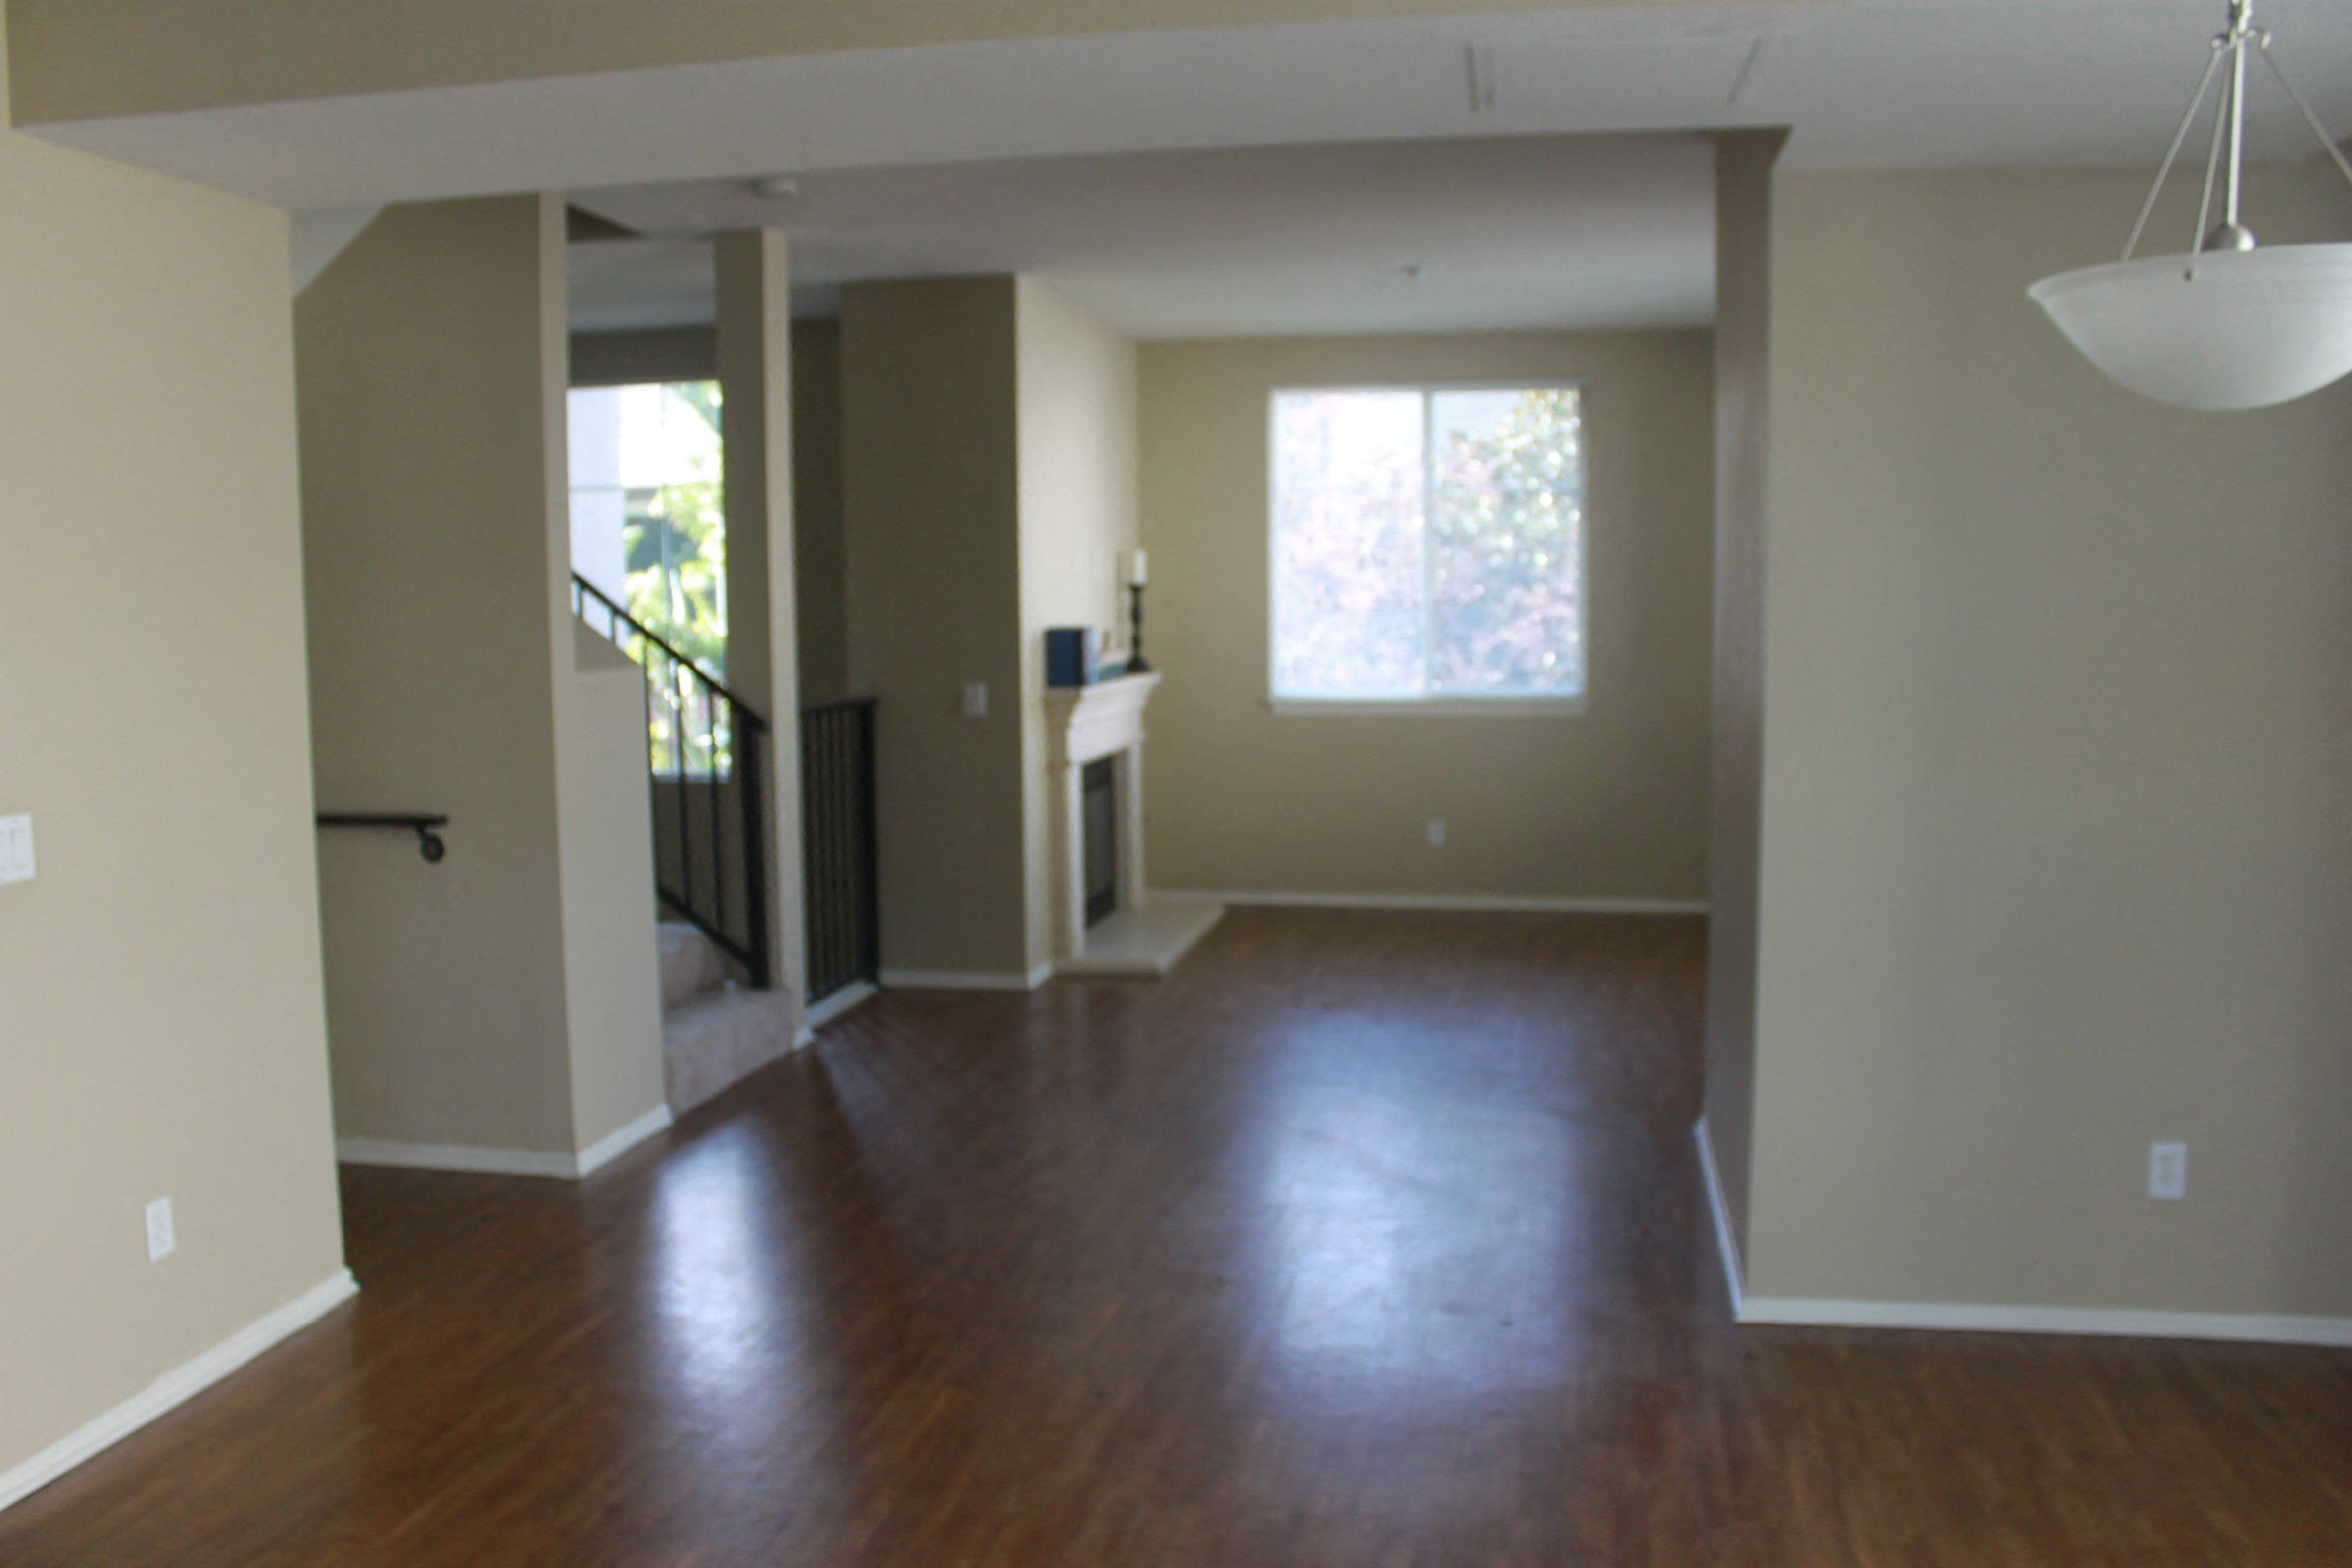 Unfurnished Living Open Space